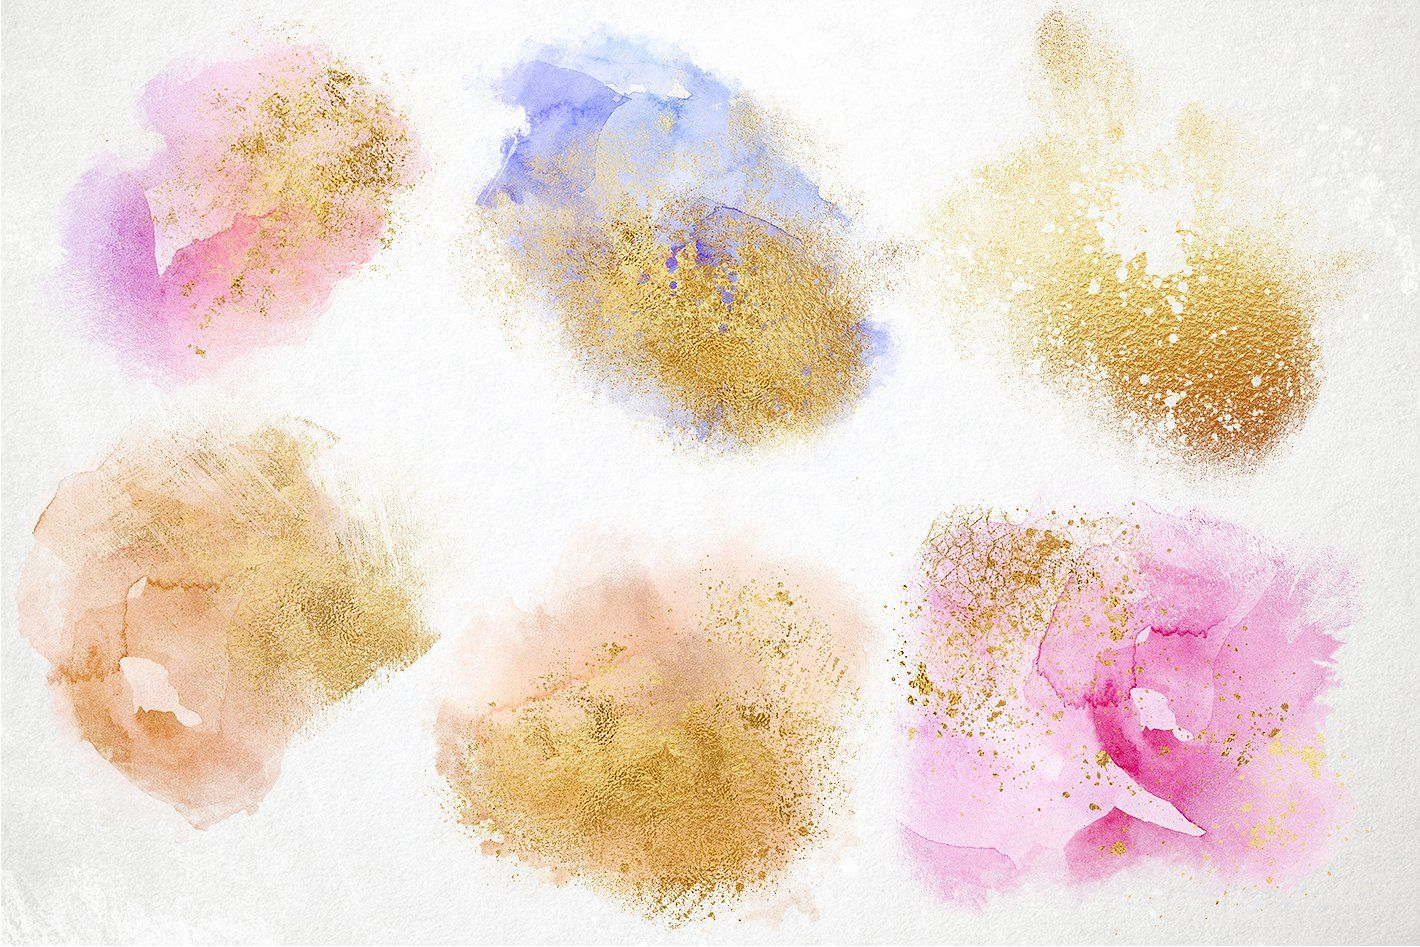 Watercolor Splashes With Gold Dust